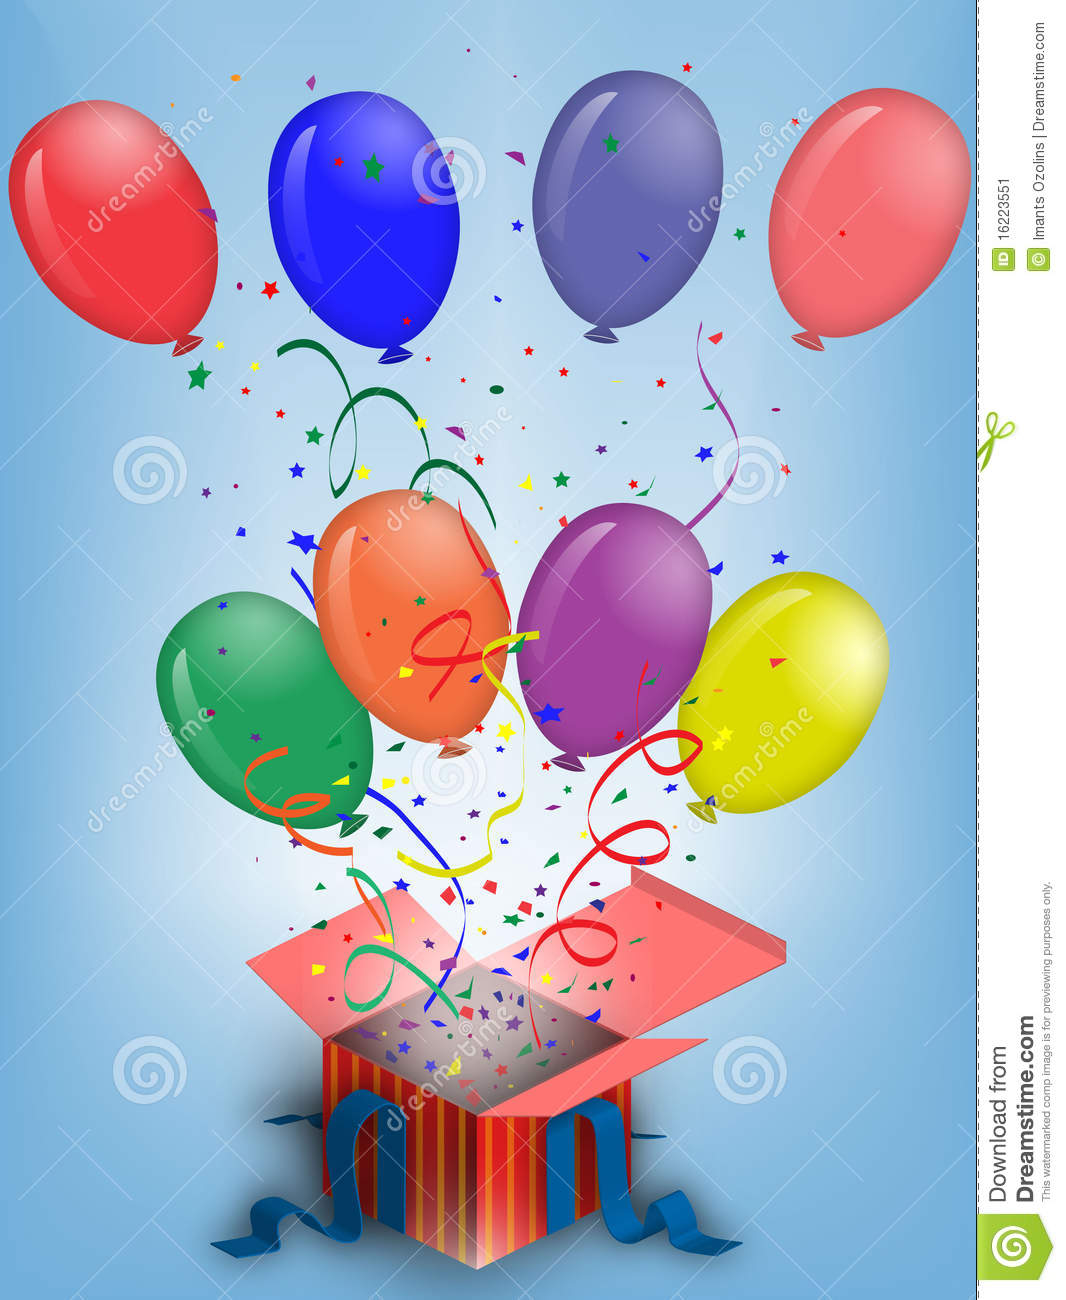 Birthday balloons stock image image 16223551